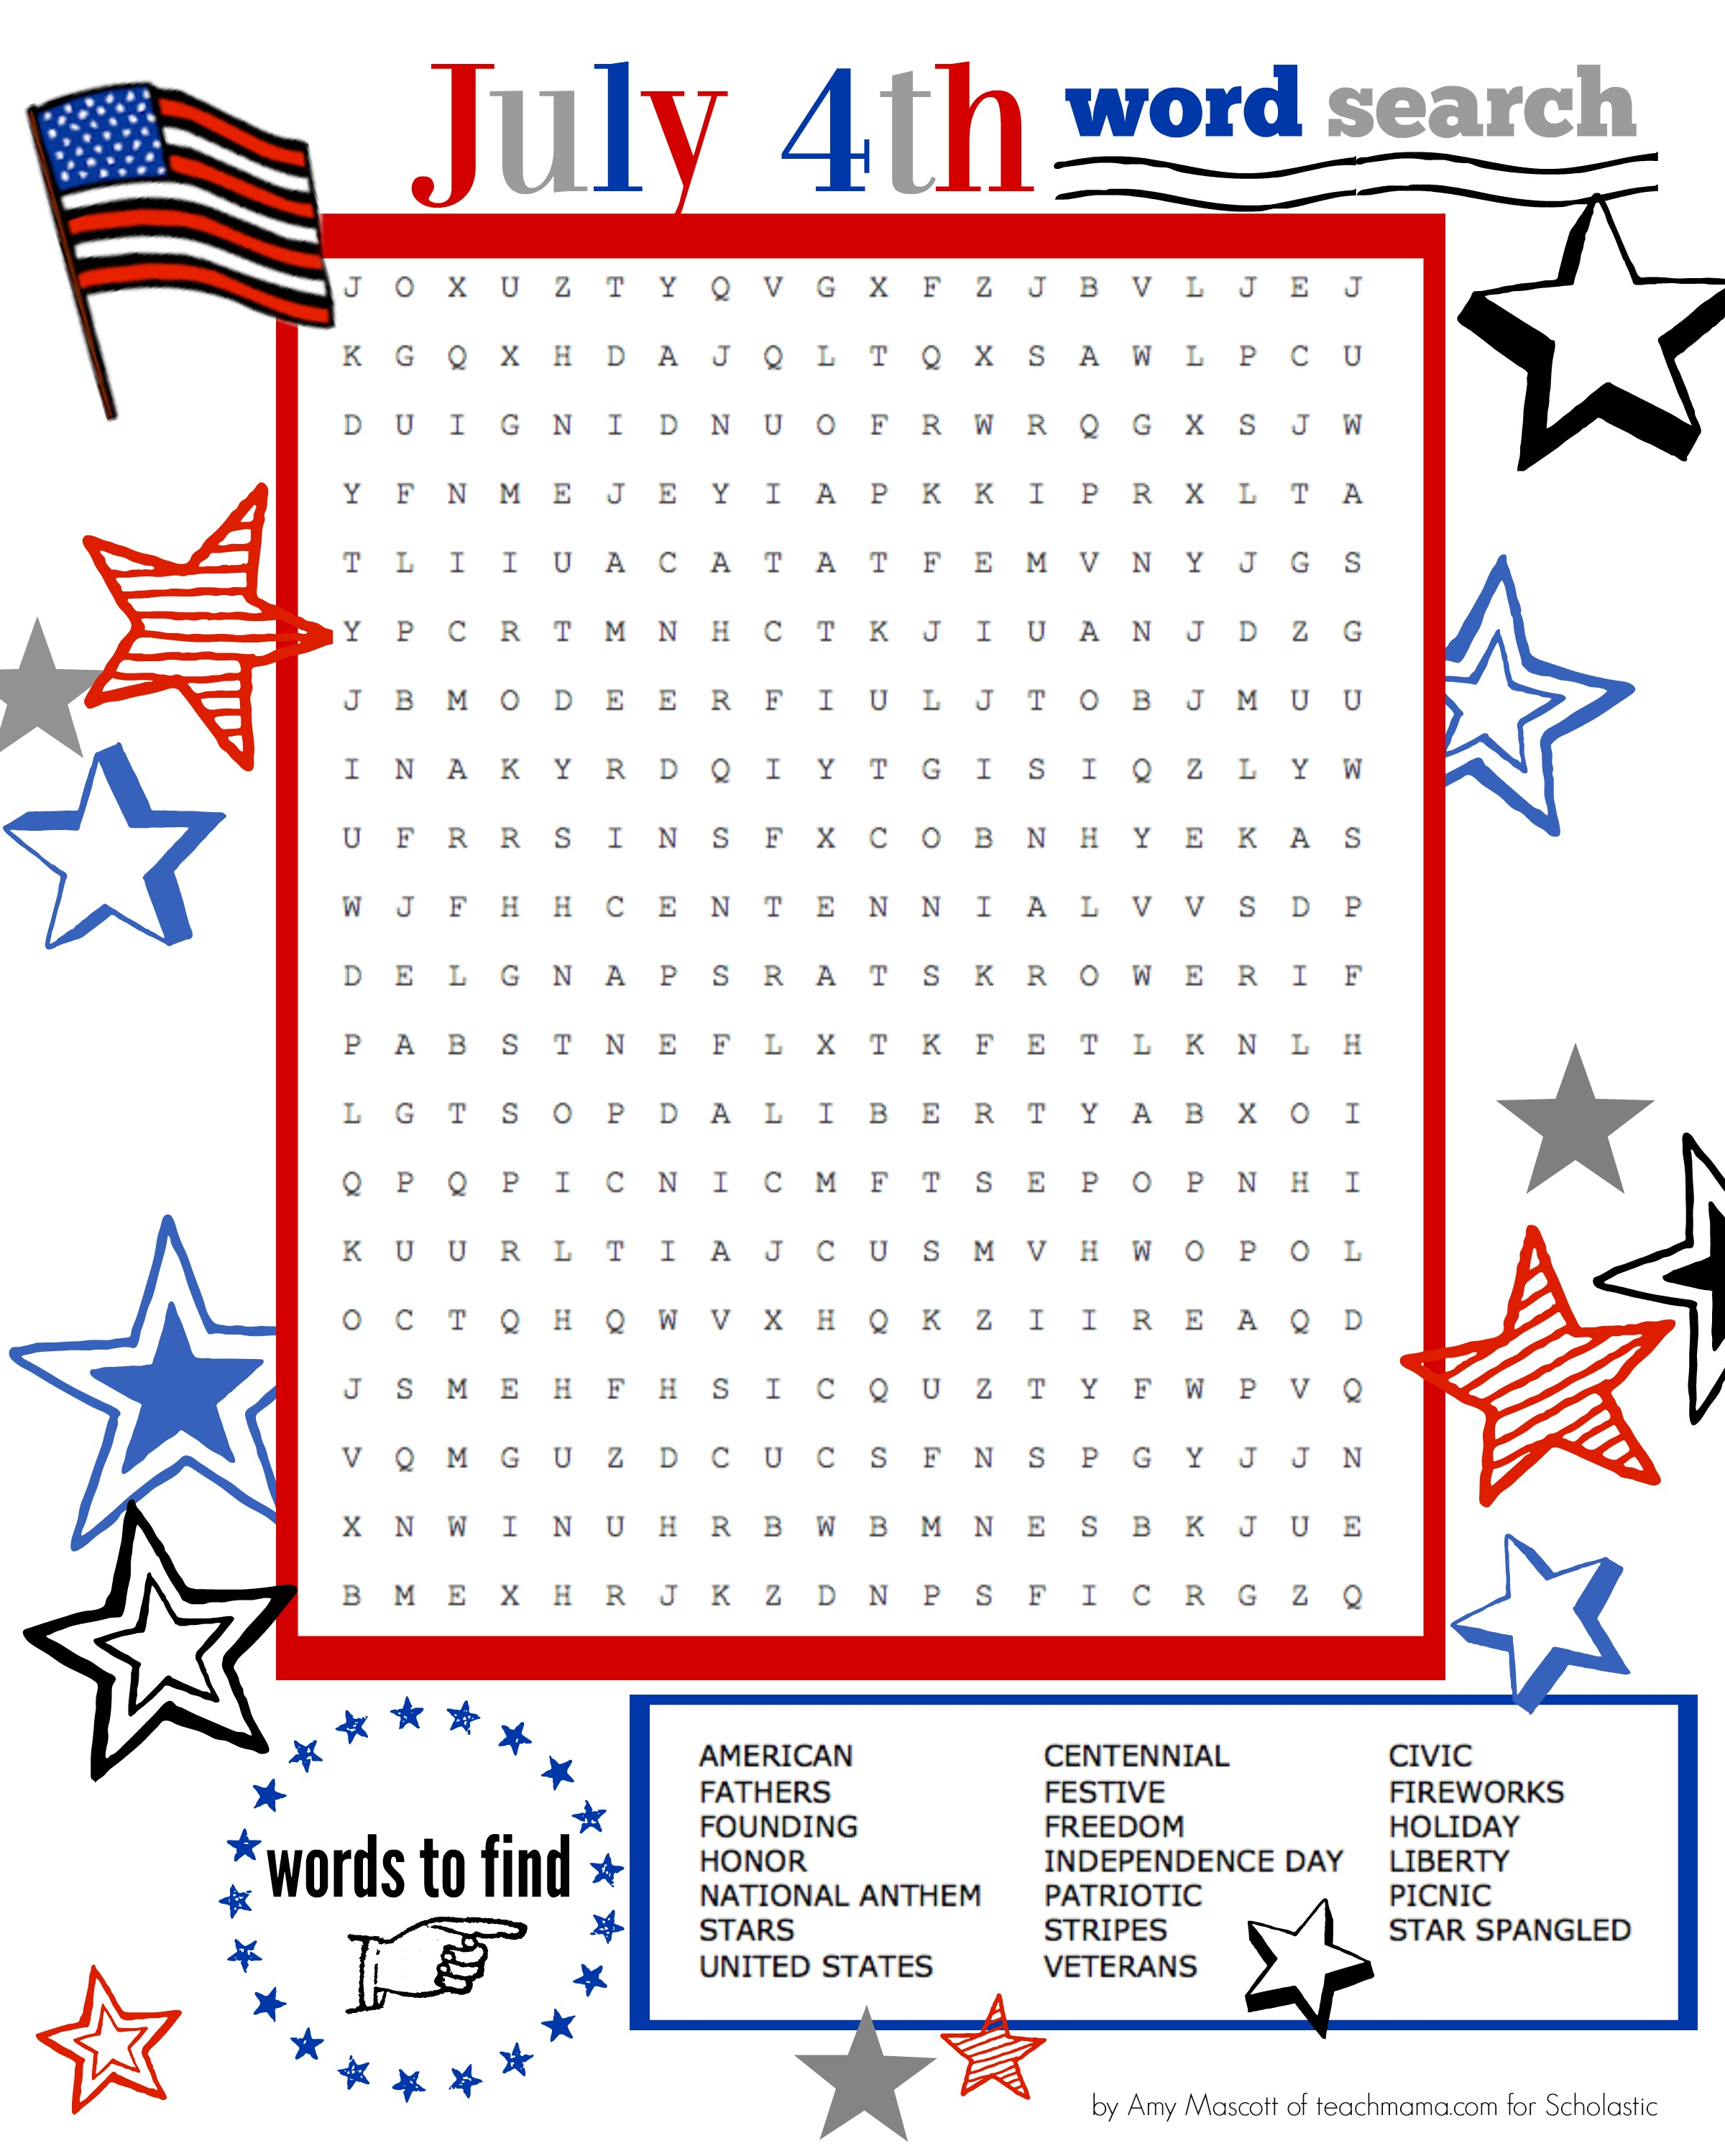 Superstar Celebration July 4th Word Search Printable